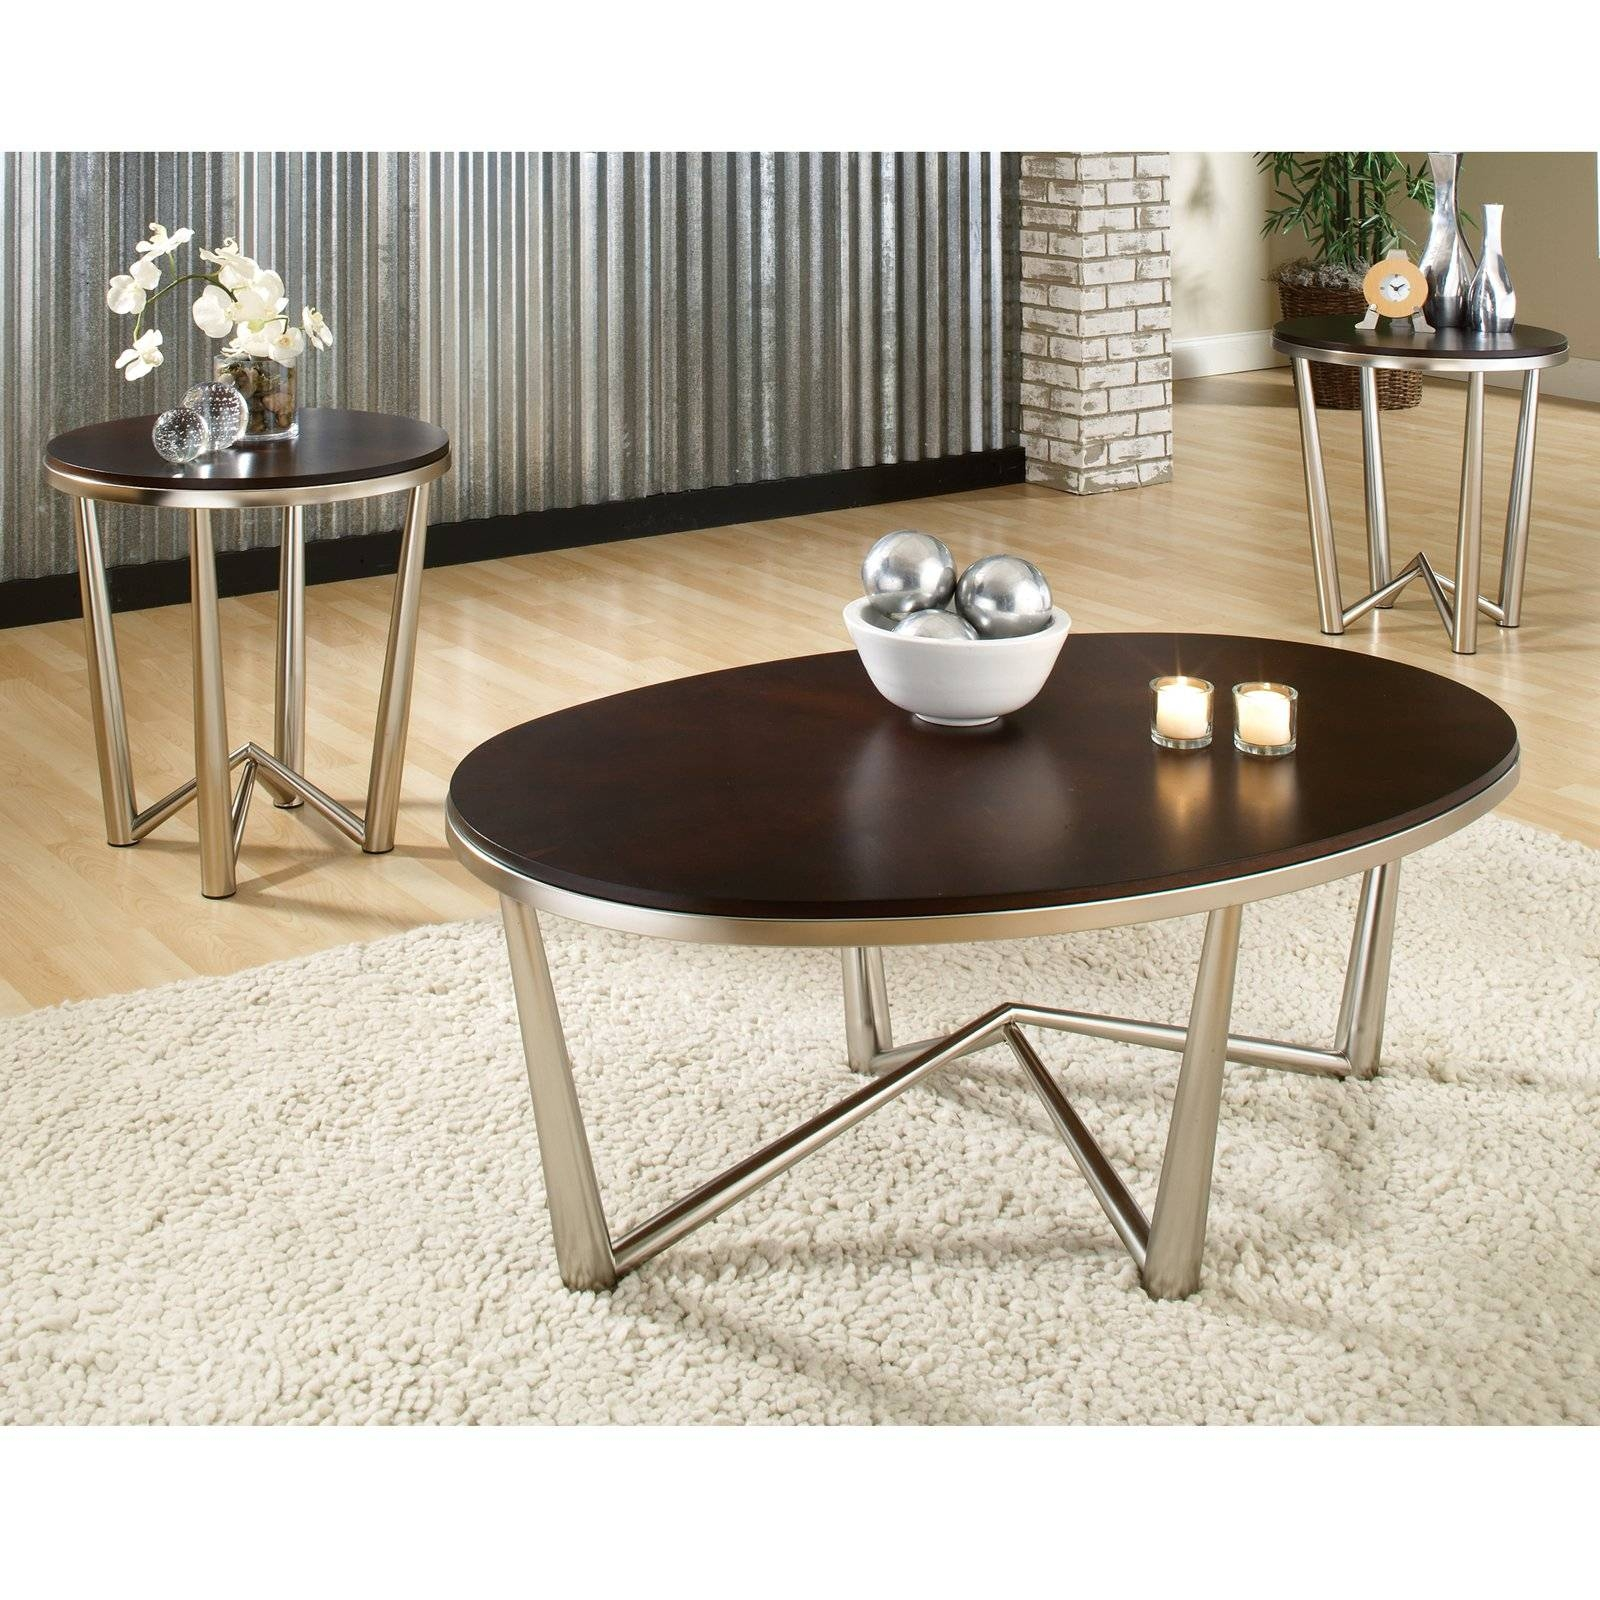 Coffee Table : 3 Coffee Table Set My Existing Coffee Table In within Oval Shaped Coffee Tables (Image 5 of 30)